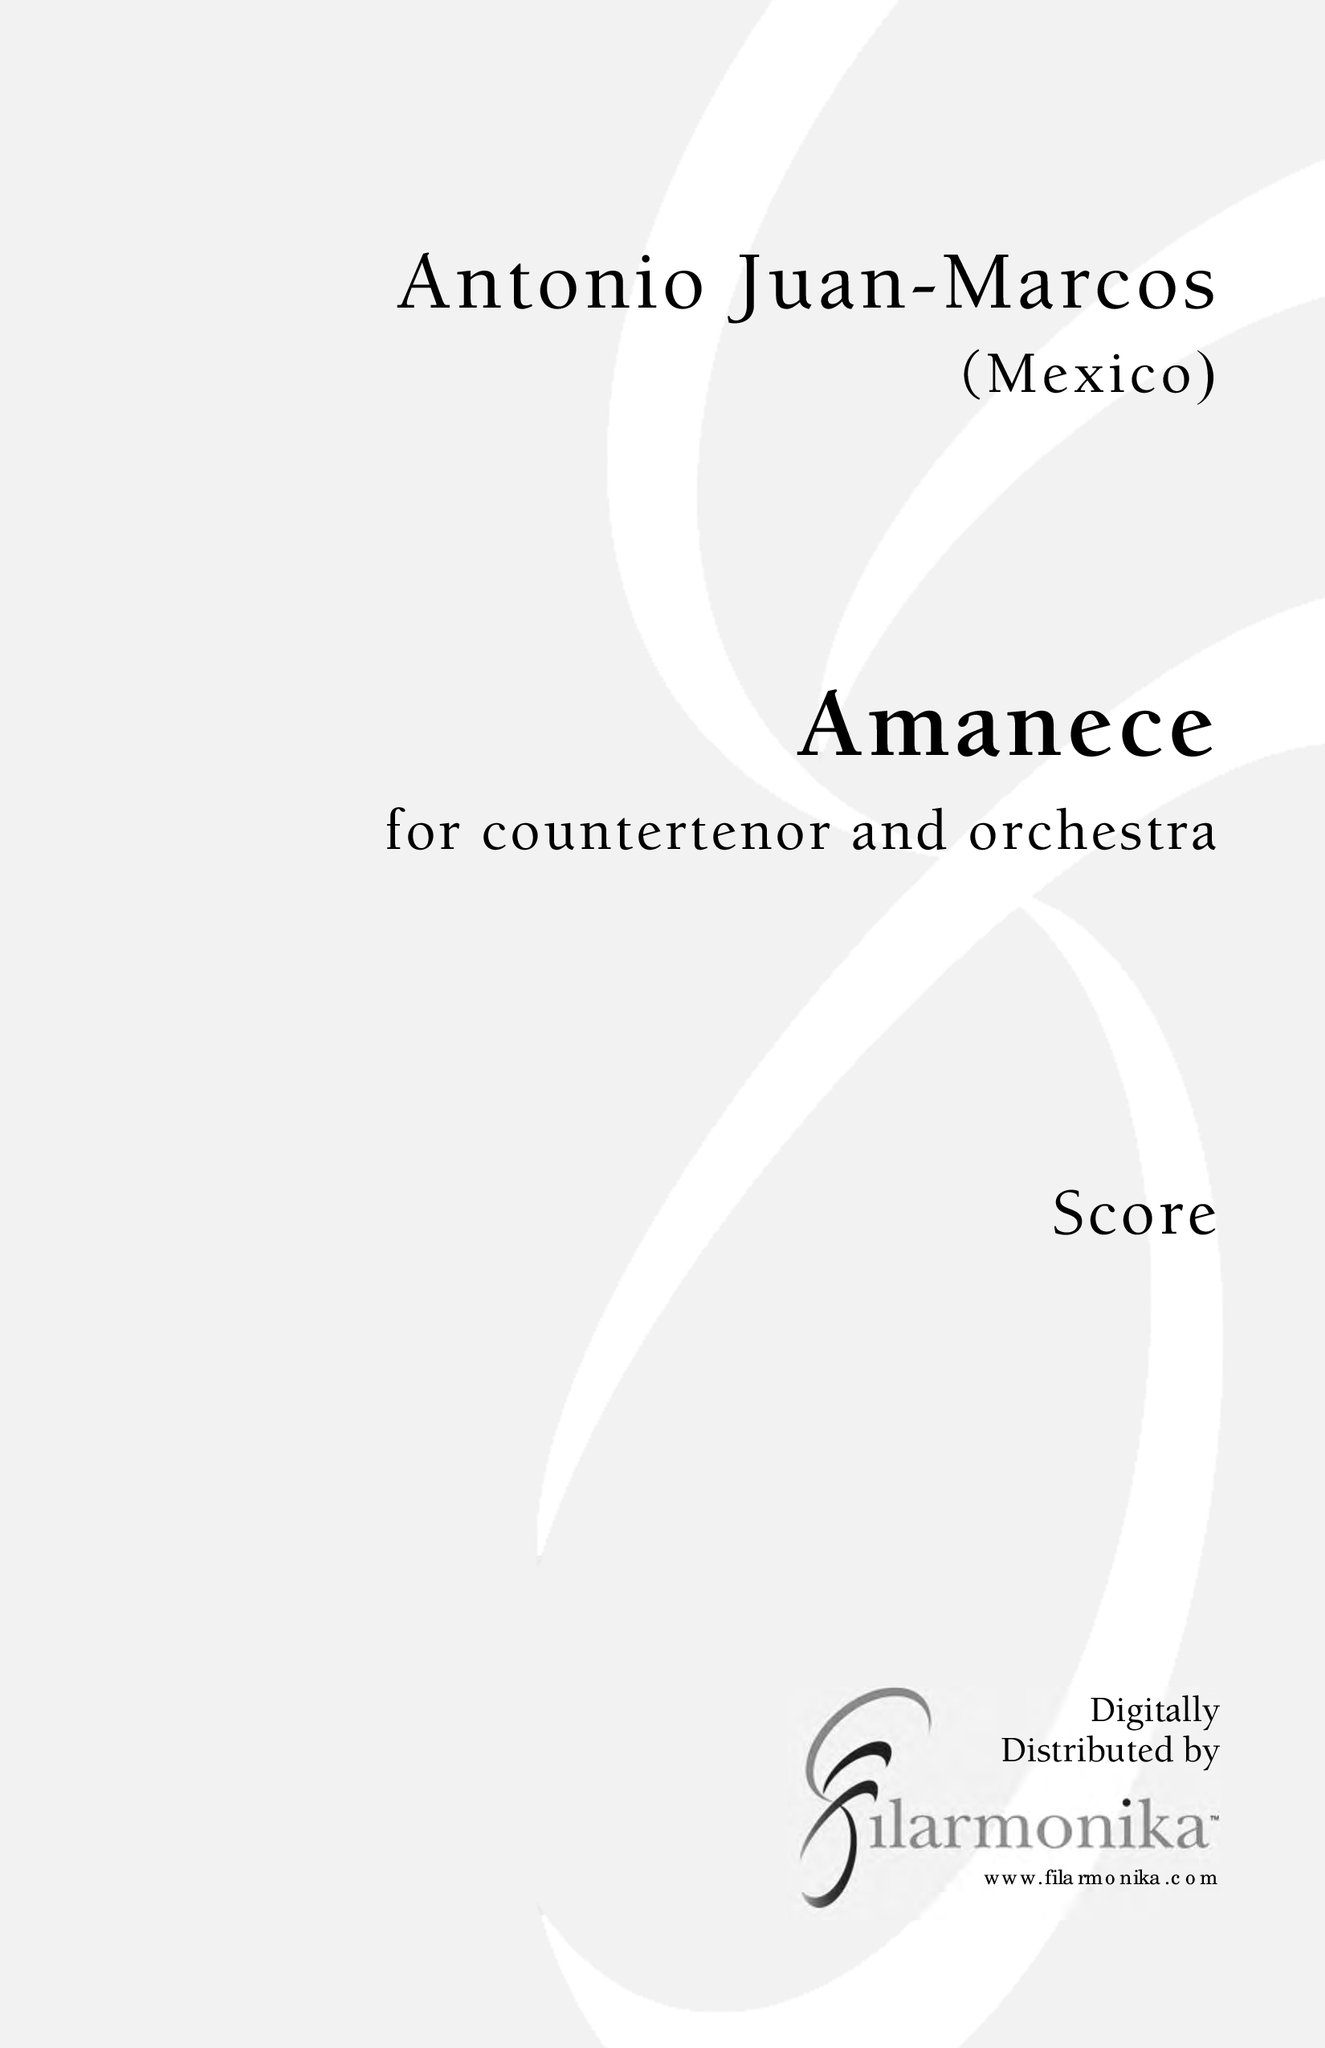 Amanece, for countertenor and orchestra